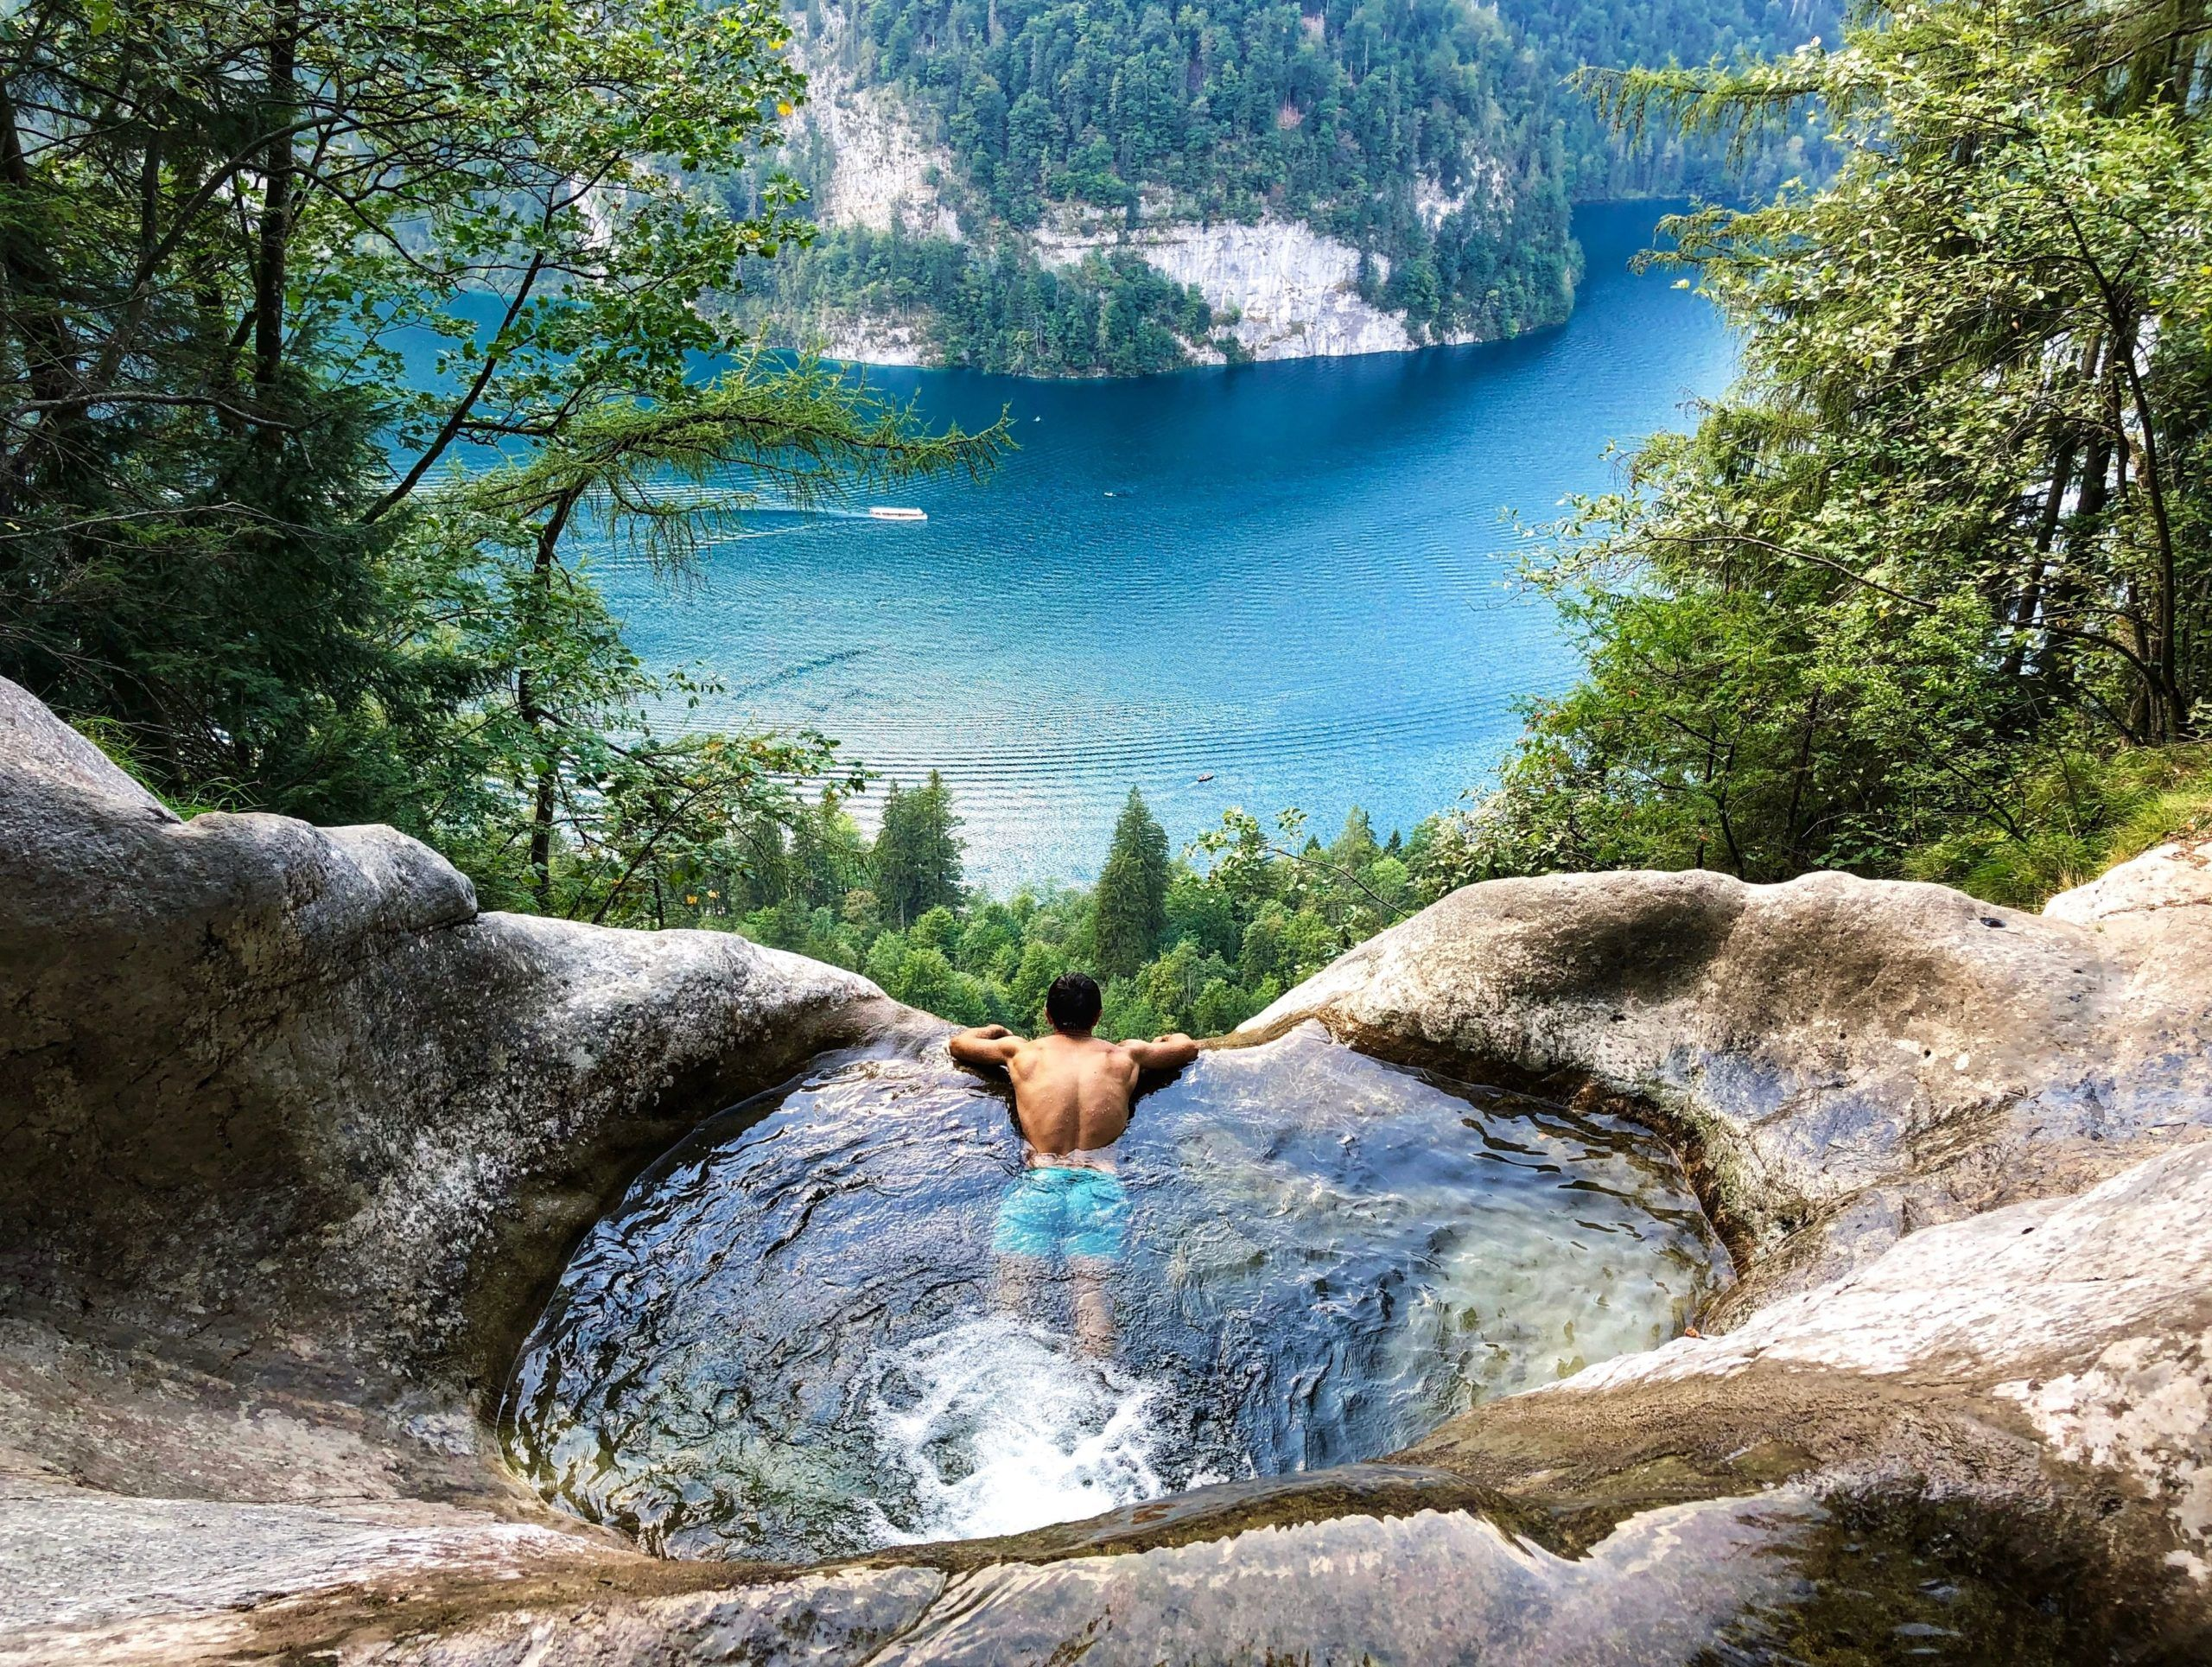 The Natural Infinity Pool At Konigssee One Of The Most Beautiful Places In Germany Ste In 2020 Die Schonsten Orte Deutschlands Schone Orte Schone Orte In Bayern